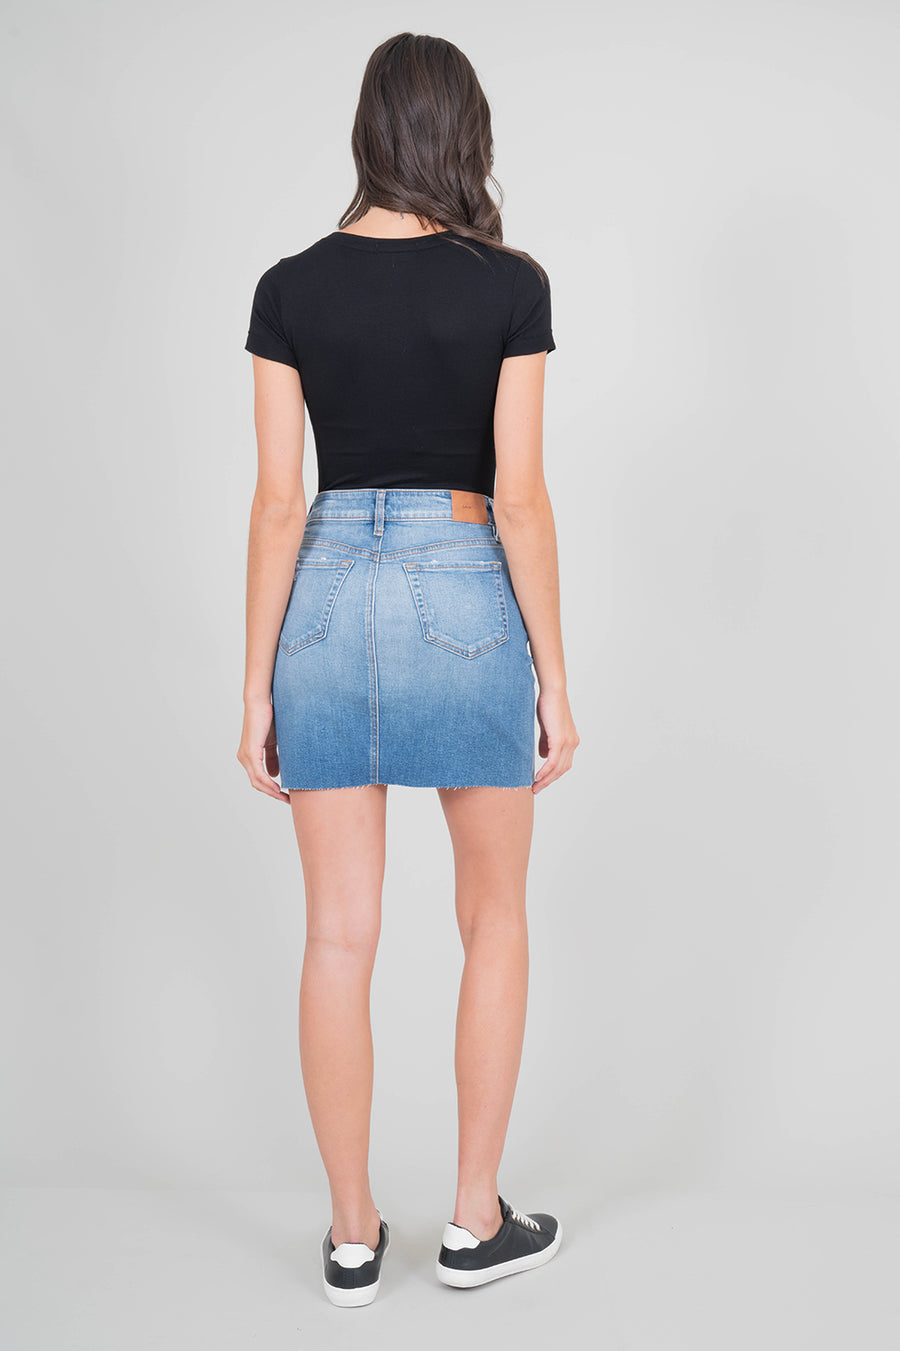 Lana Exposed Button Skirt - level99jeans